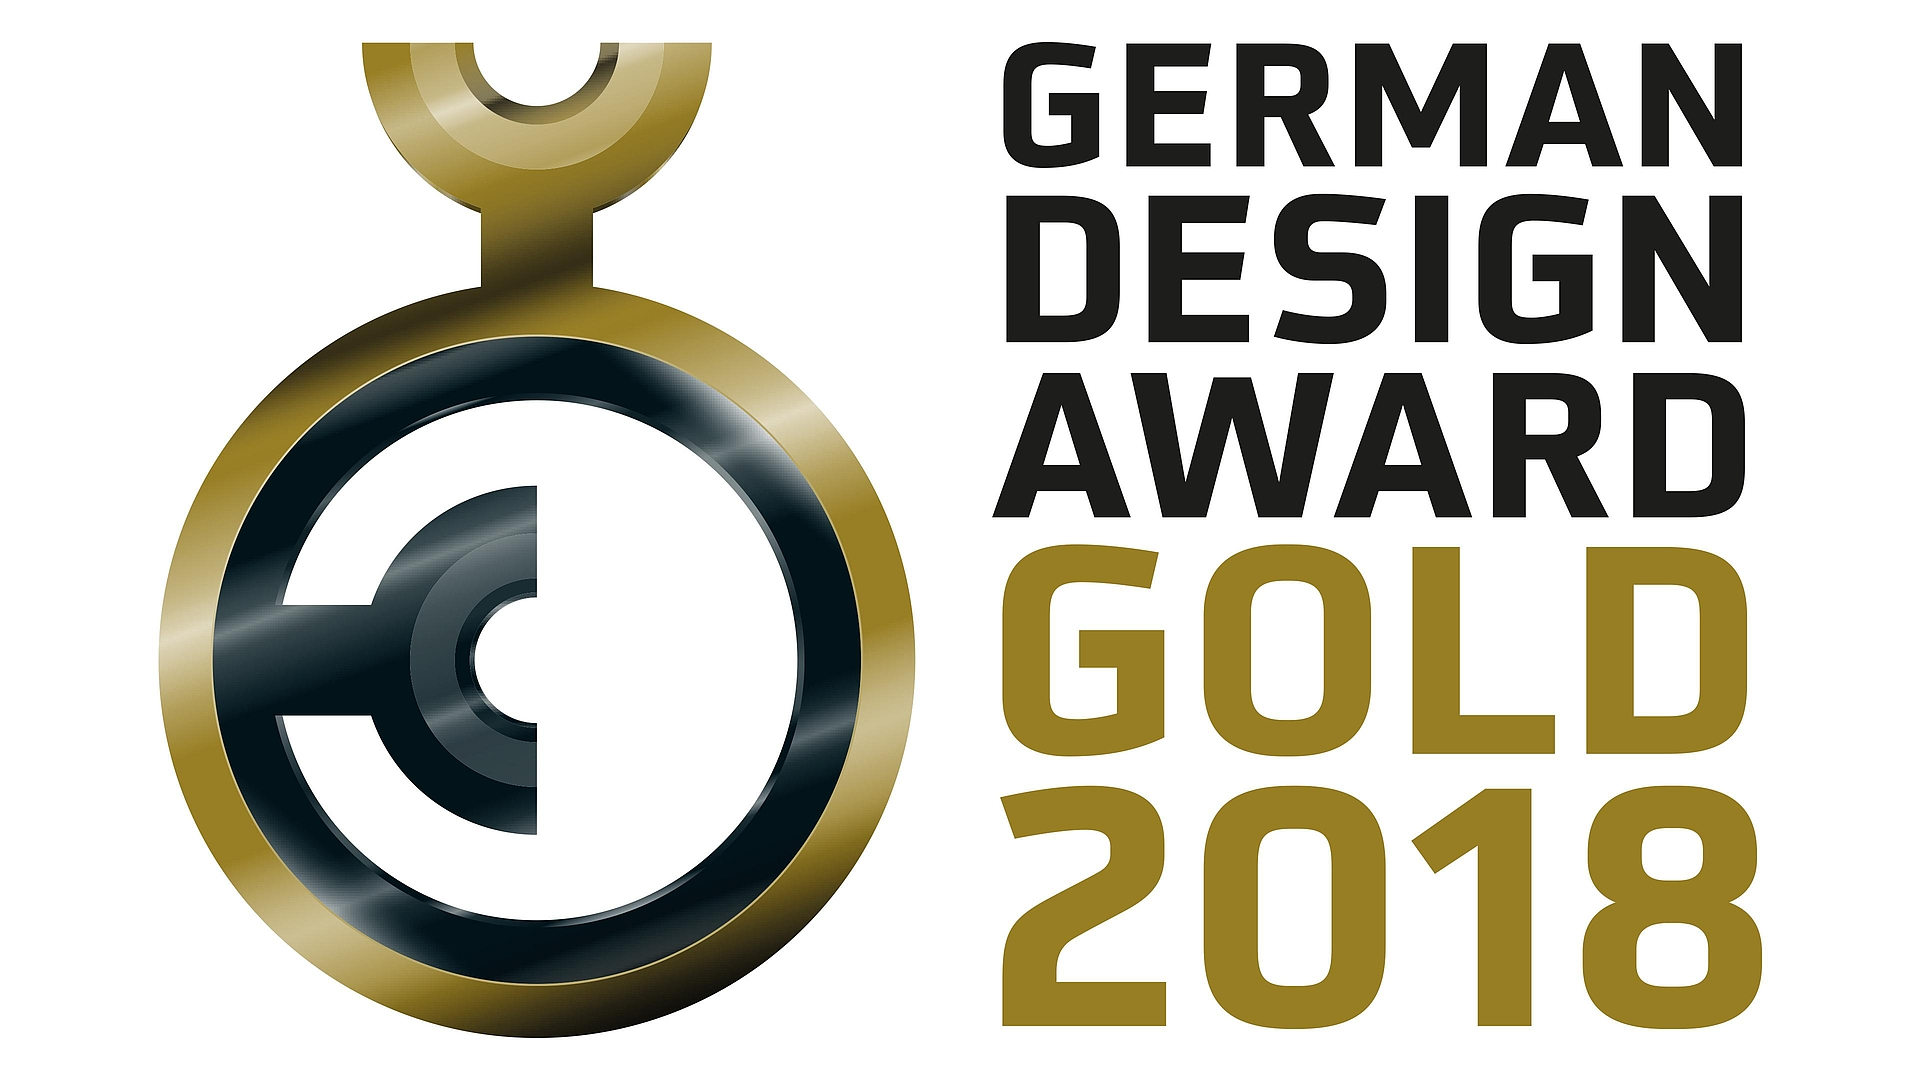 German Design Award Gold 2018